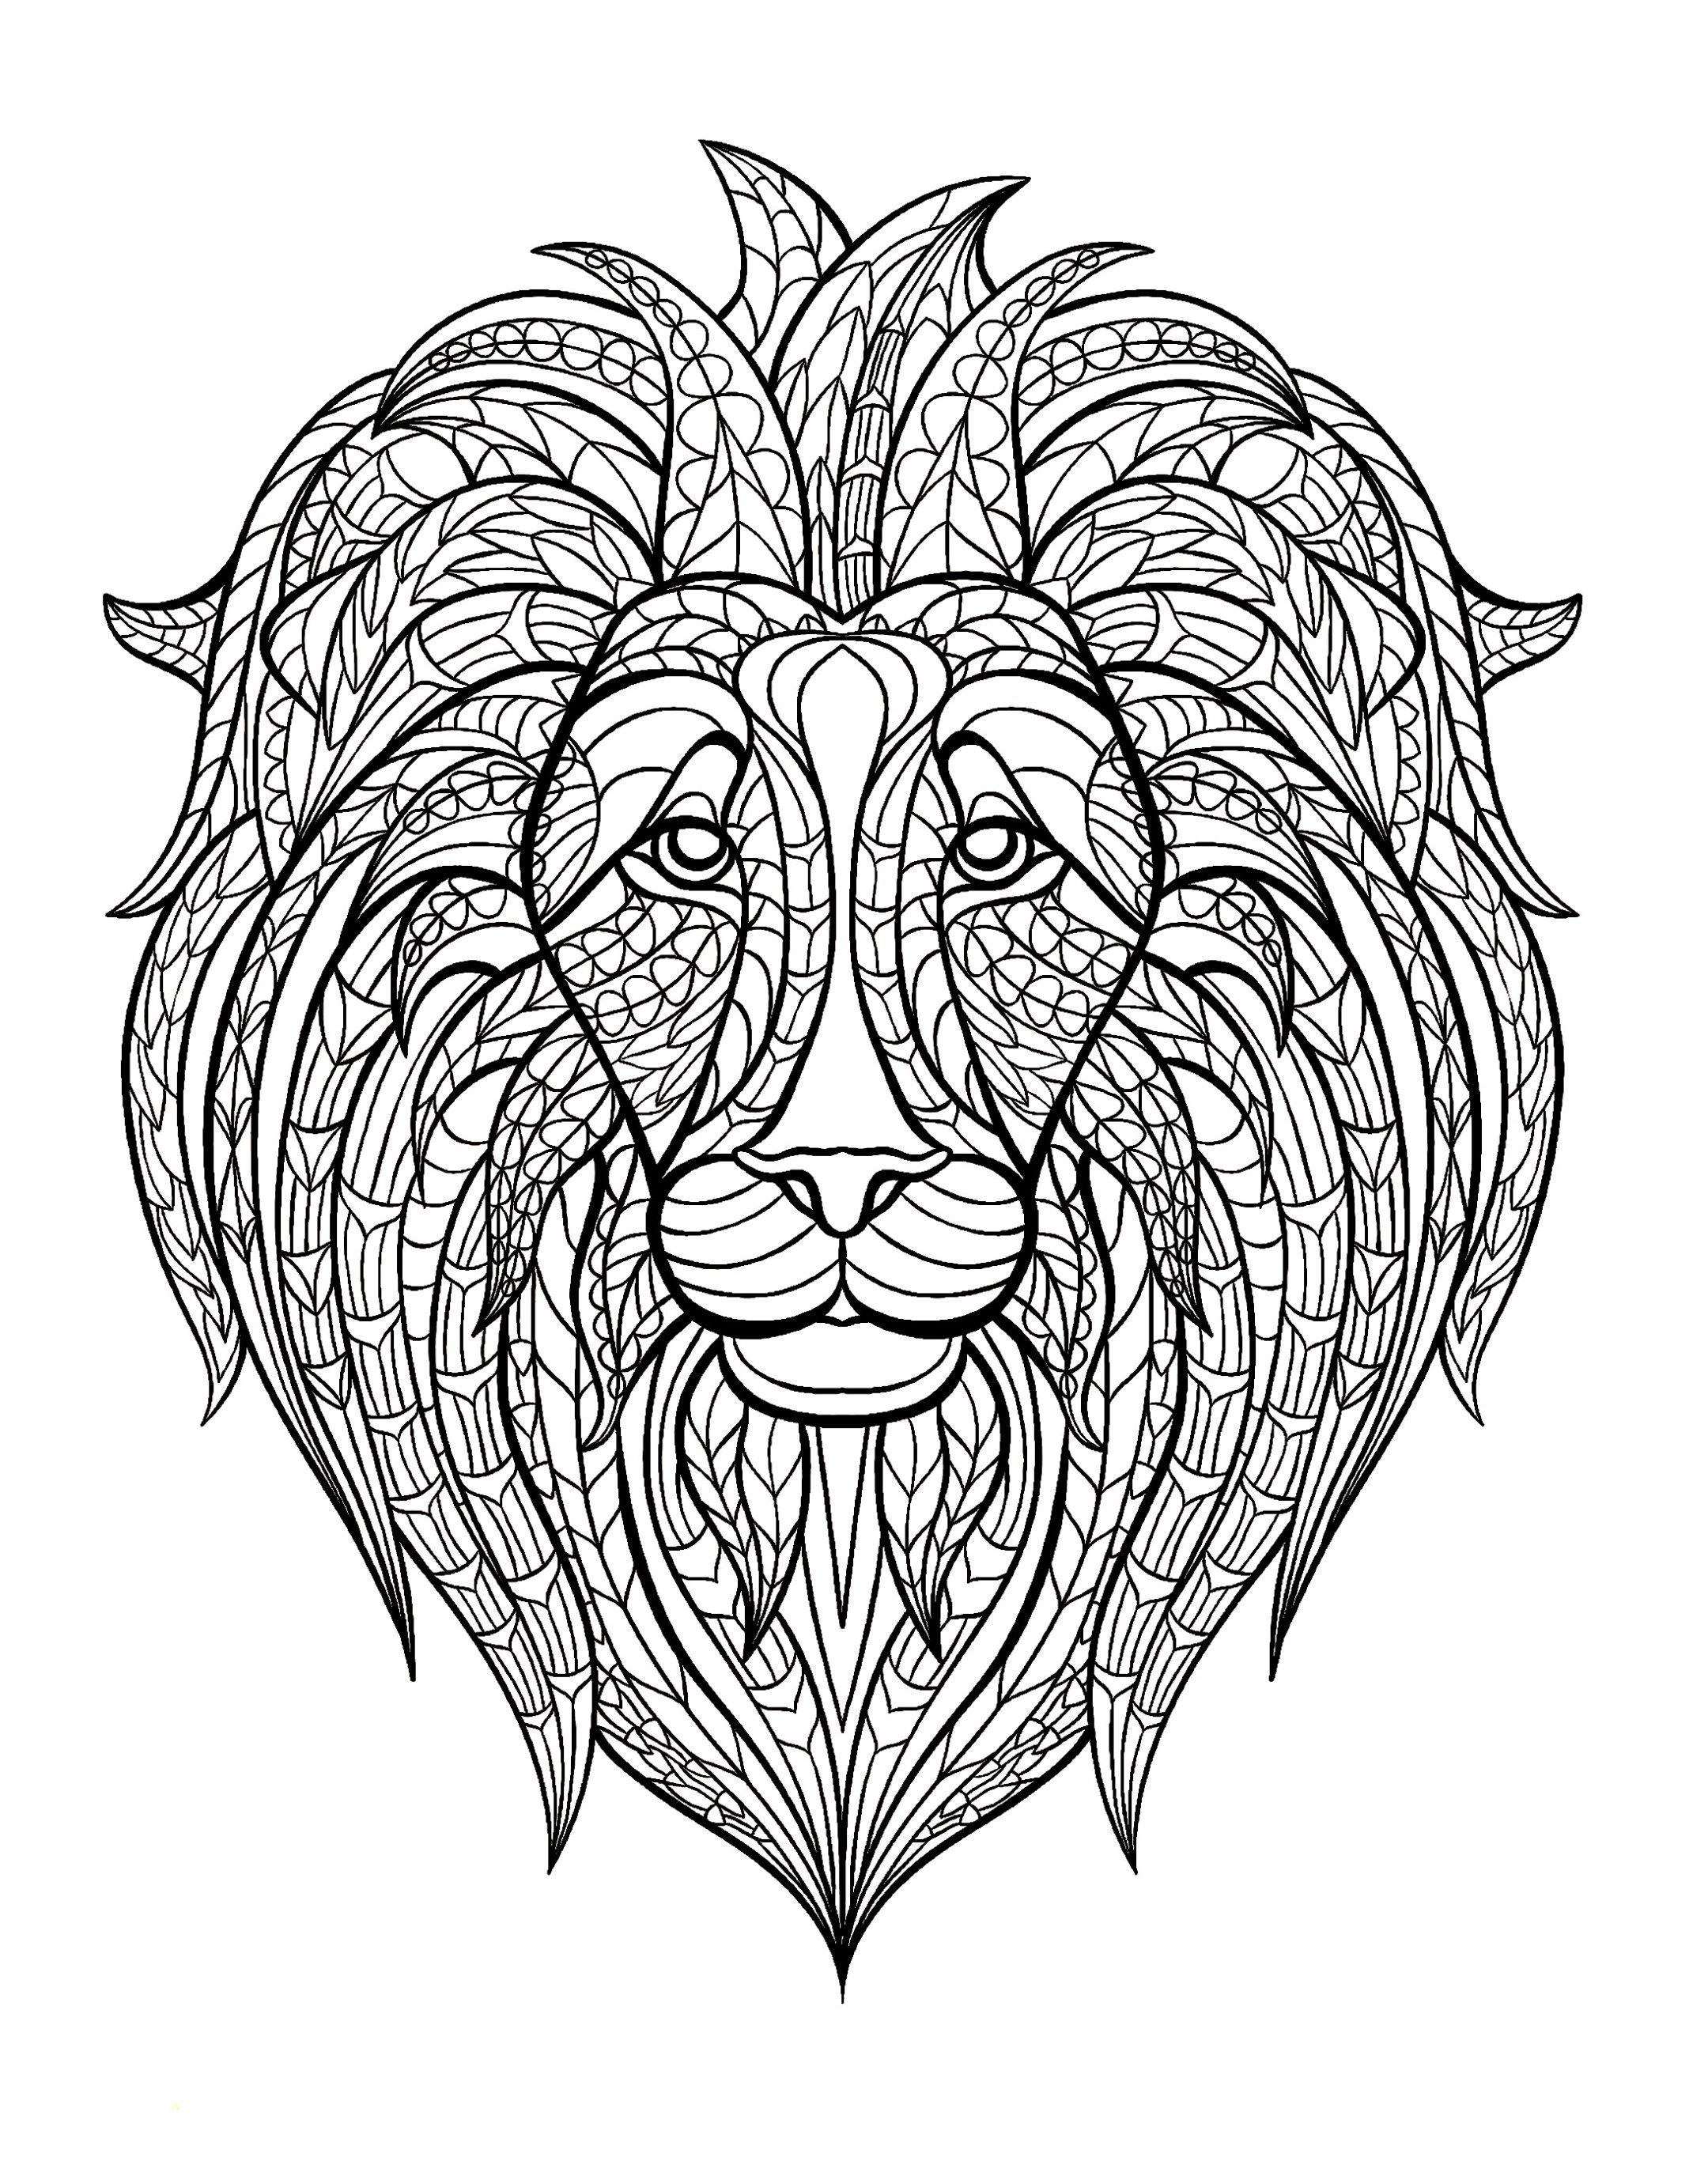 Adult Coloring Pages: Lion 2 | Coloring pages | Pinterest